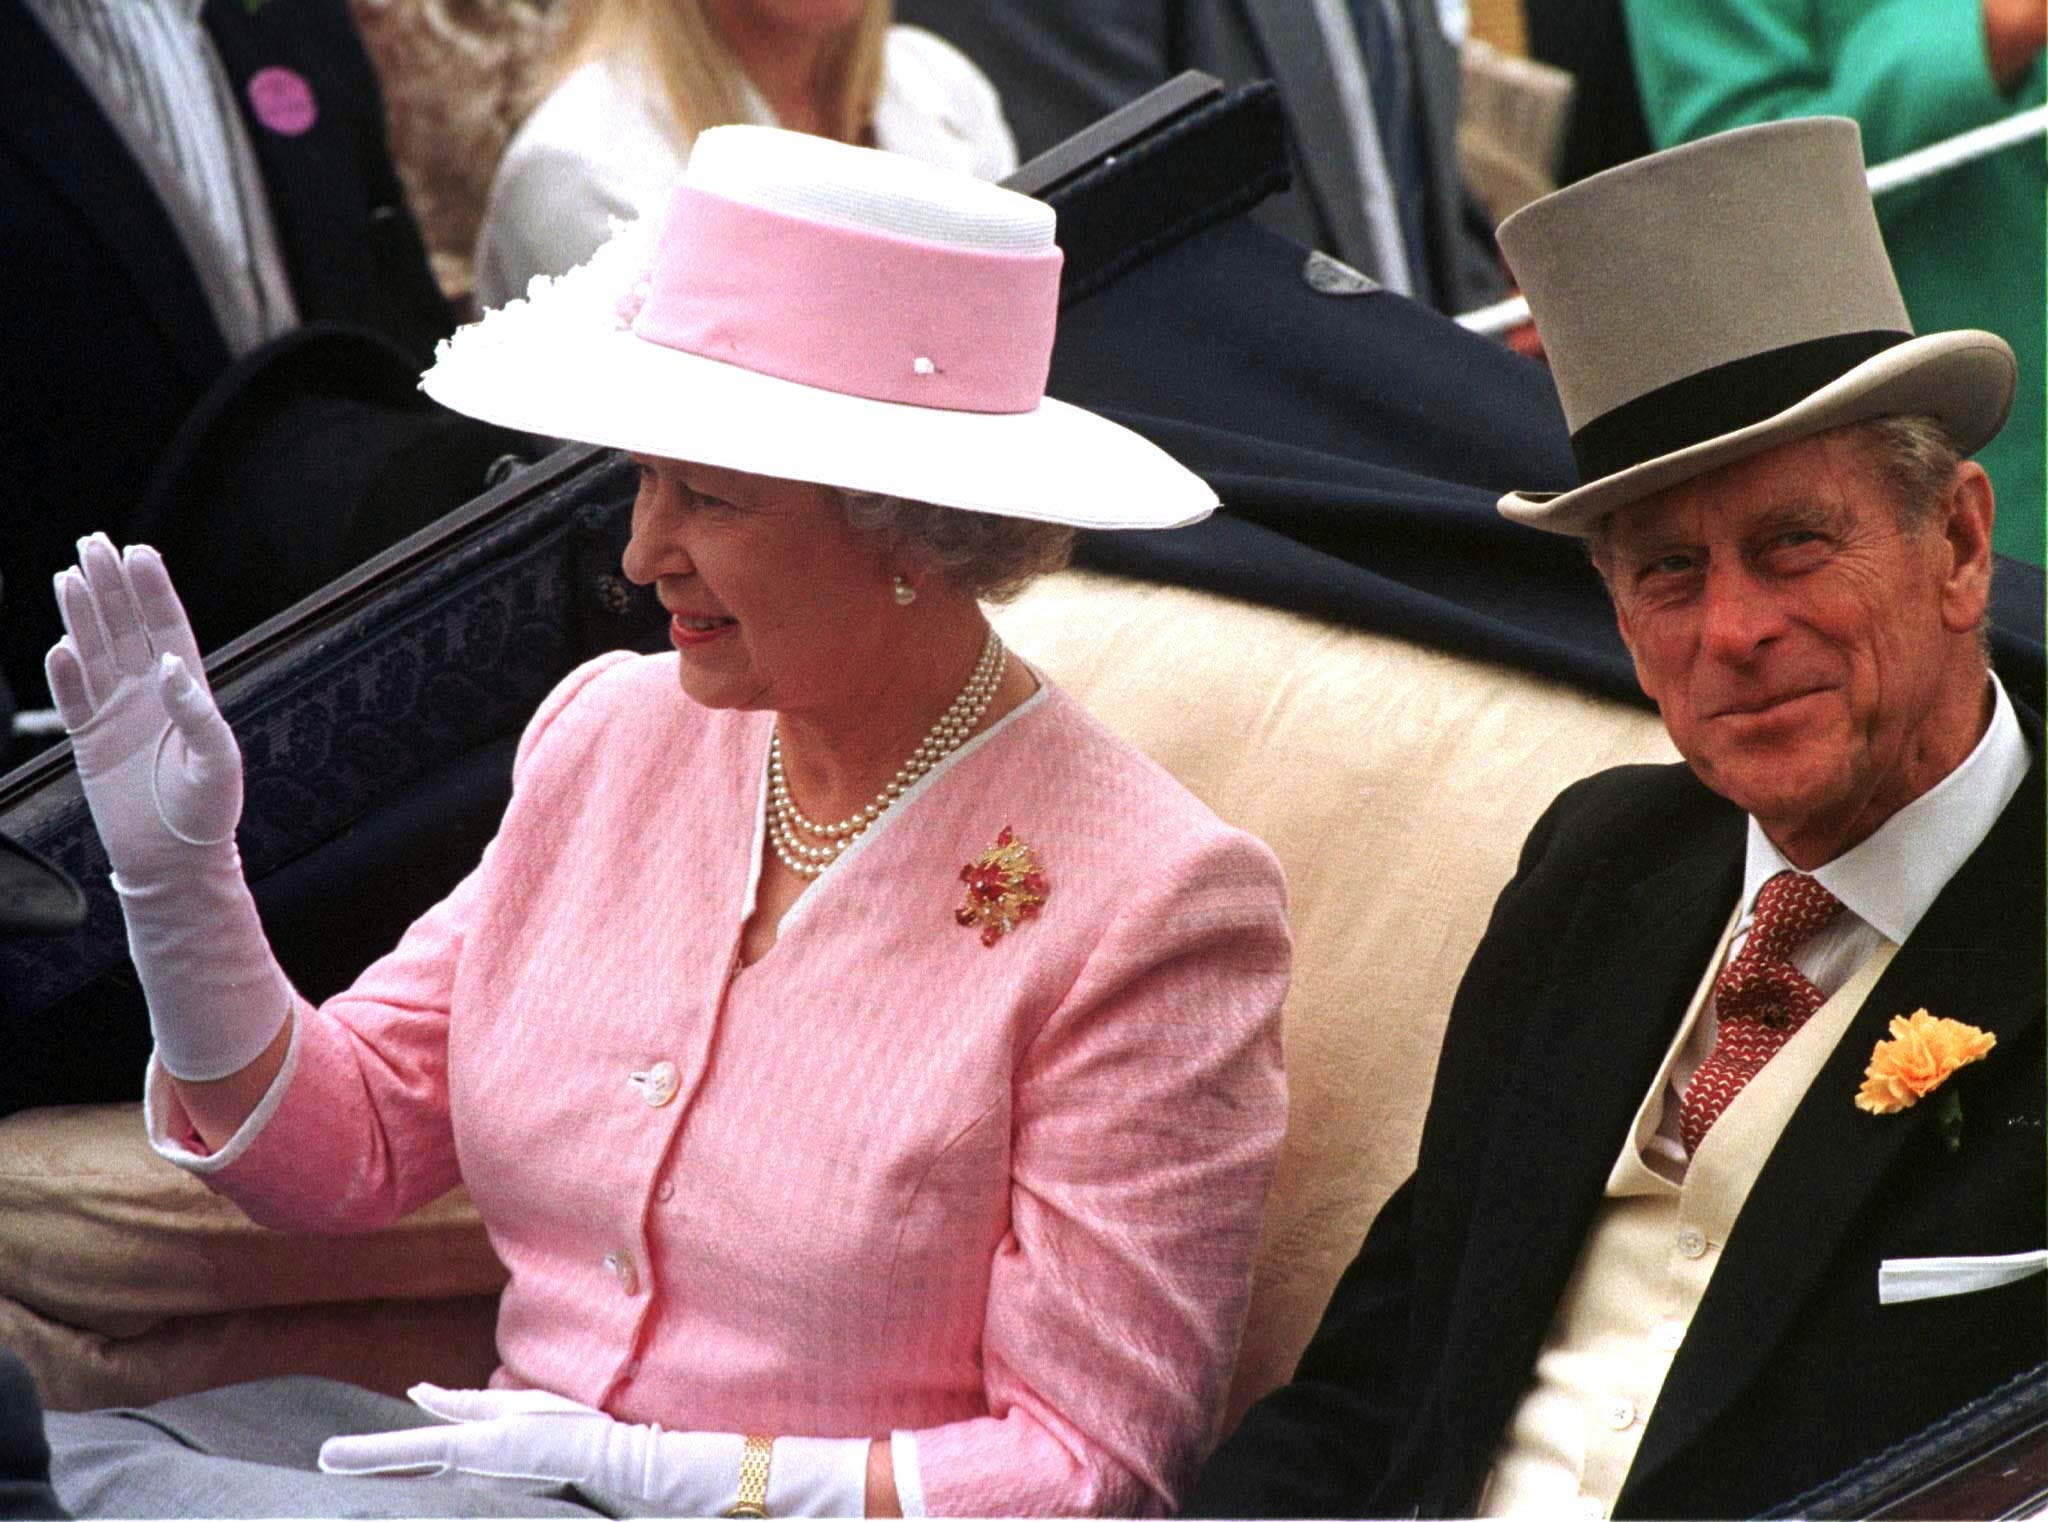 Queen Elizabeth II waves and Prince Philip smiles as their carriage is driven through the royal enclosure at the Royal Ascot racetrack June 17, 1997. Hundreds attended the first day of the annual event to see the fashions, royalty and the racing. BRITAIN